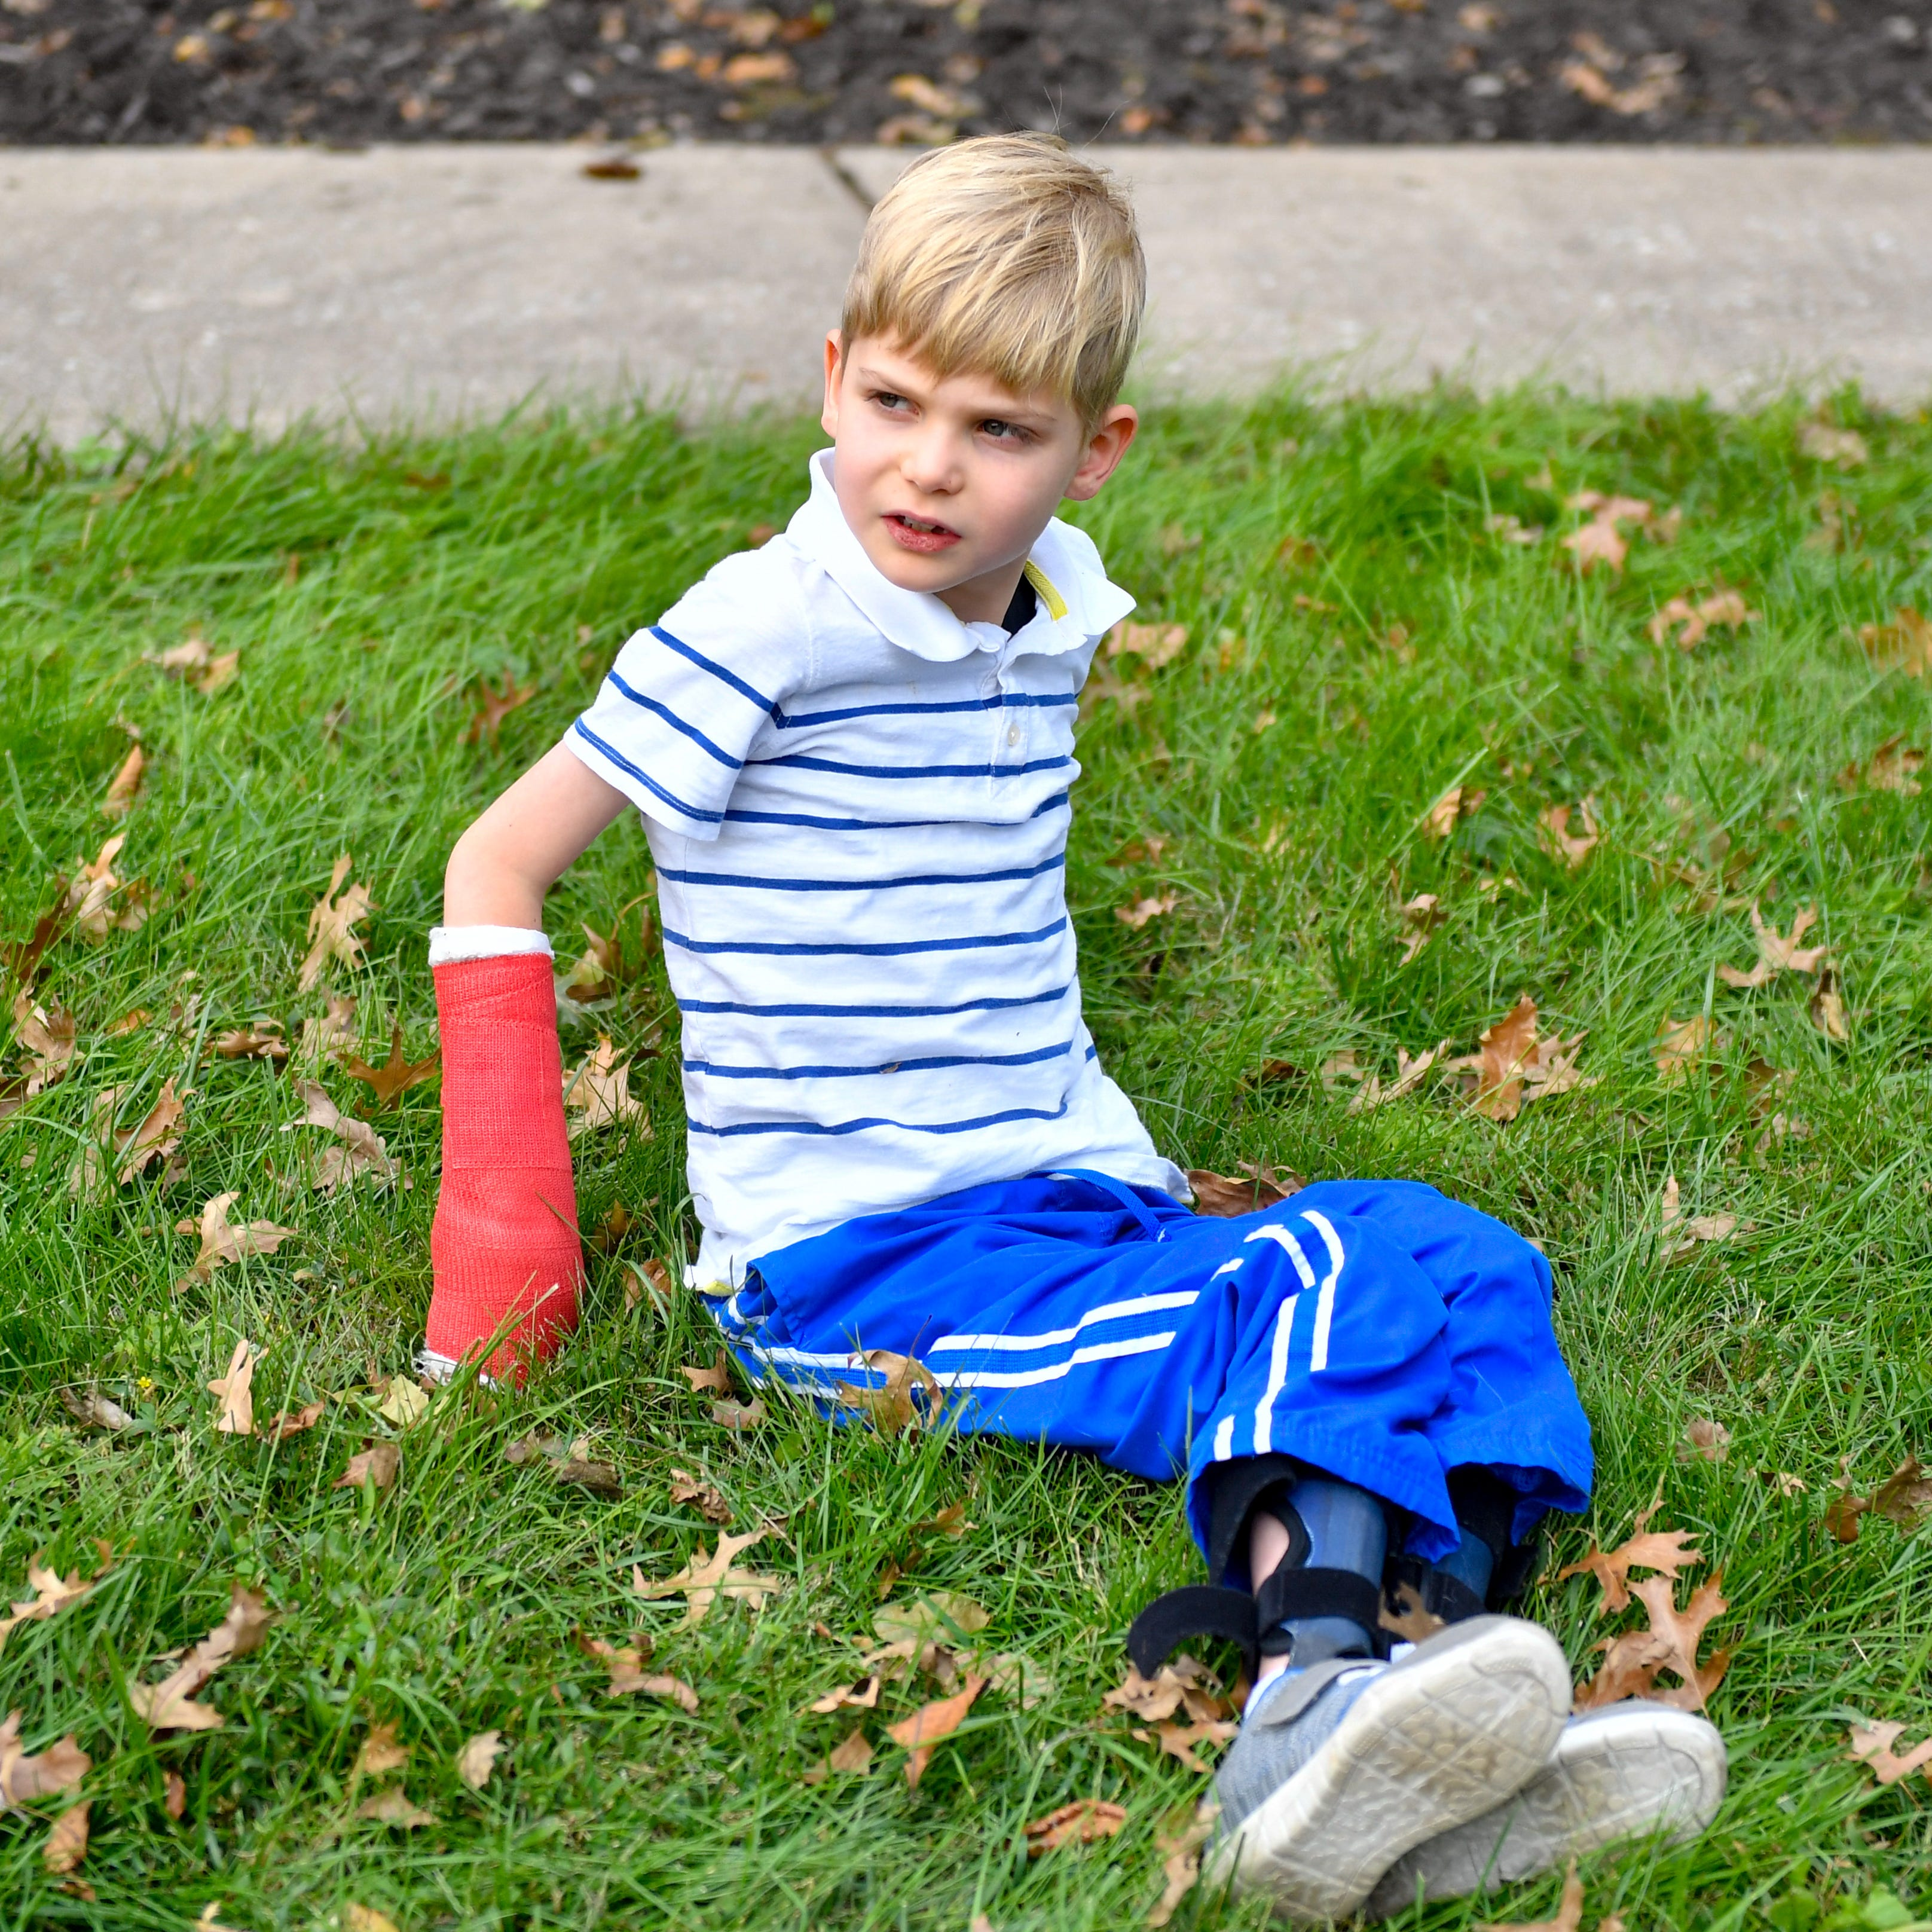 In August 2016, Sebastian Bottomley, 5, contracted a rare  polio-like disease called Acute flaccid myelitis. He could not move anything below his neck within the first few days of getting sick.